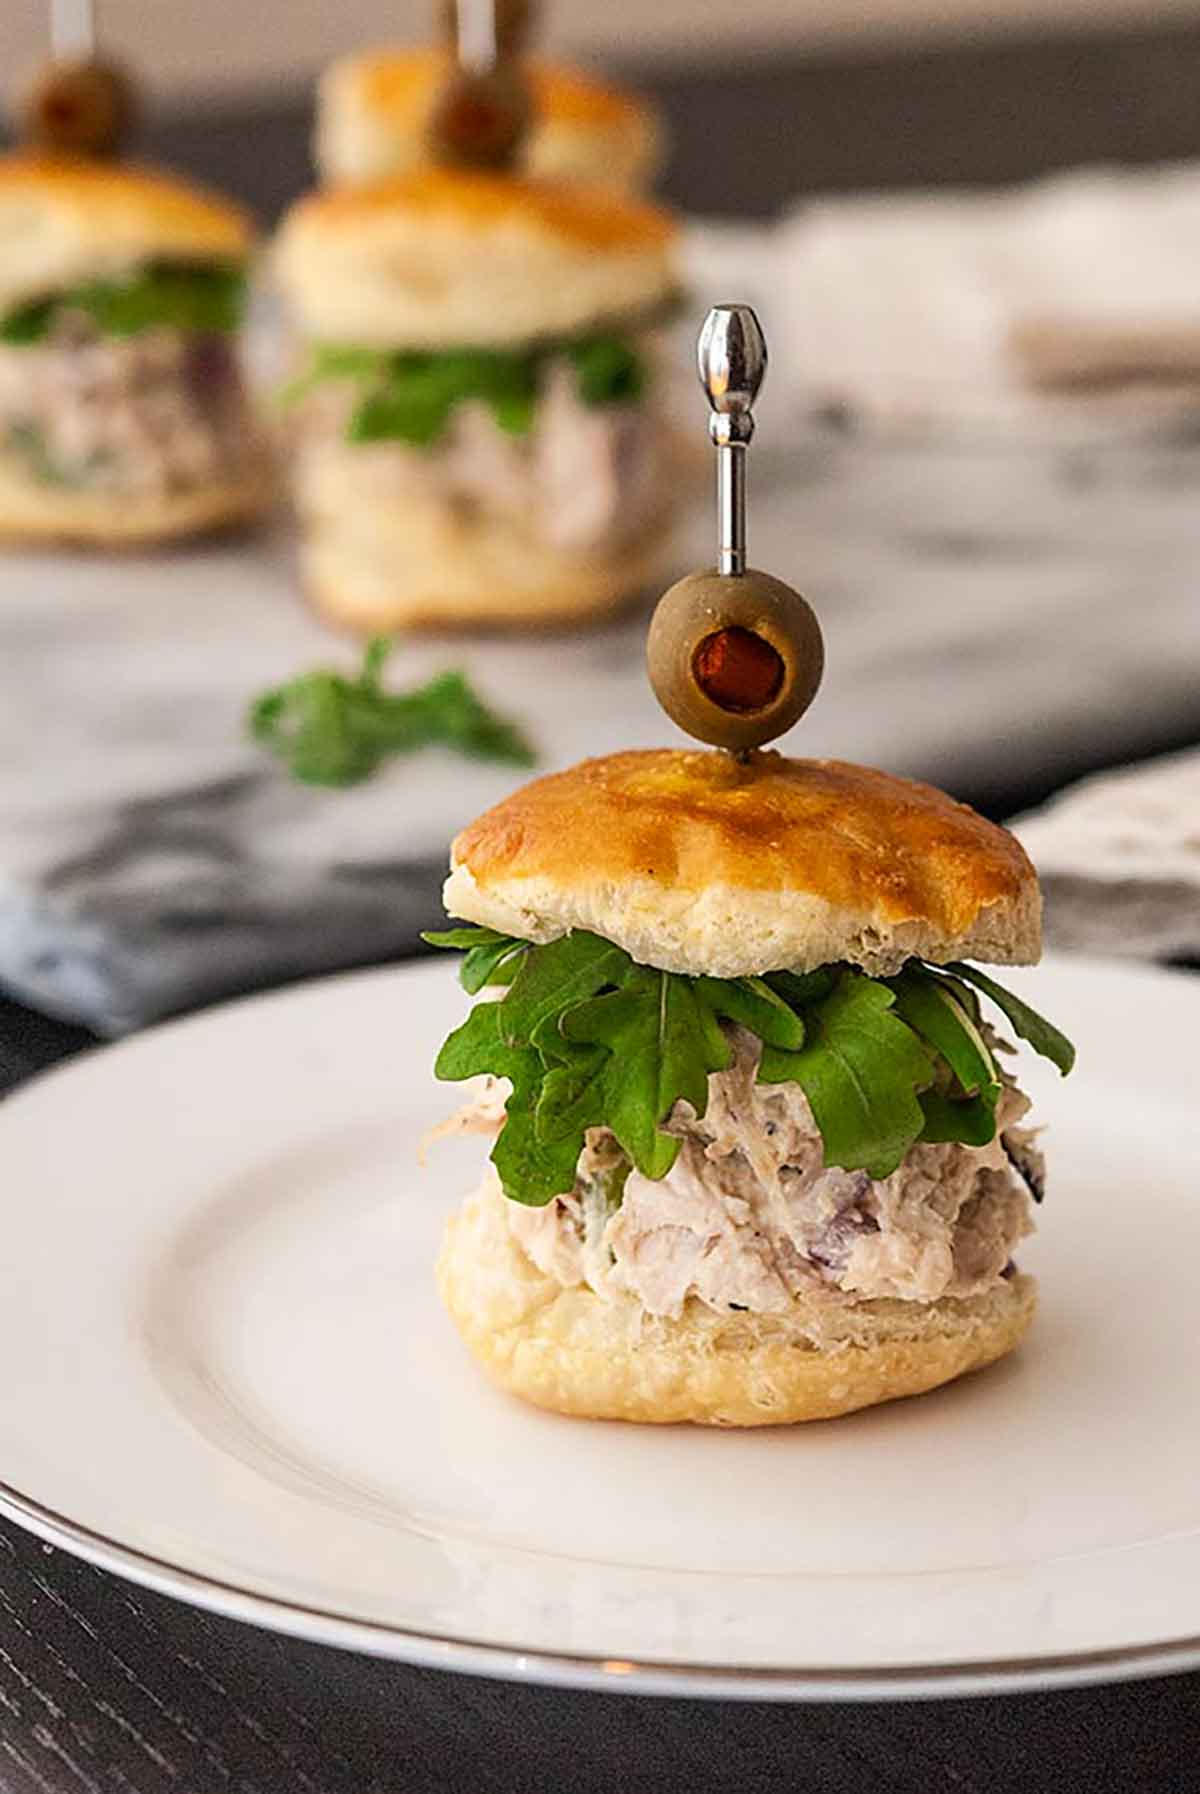 A chicken salad slider on a small plate with other sliders in the background.